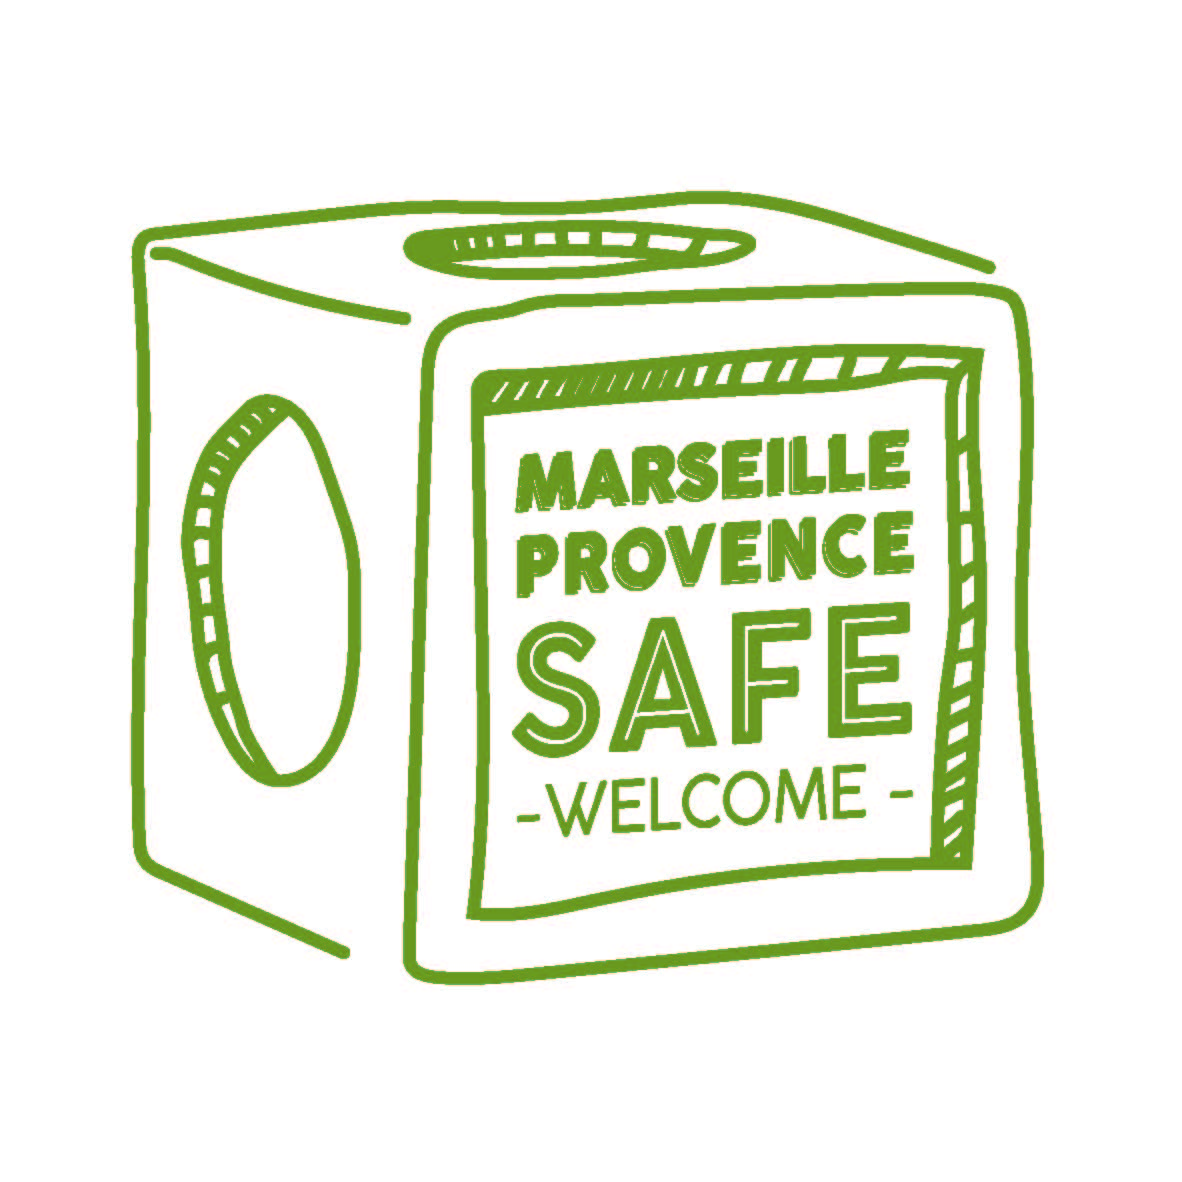 MARSEILLE PROVENCE SAFE WELCOME <!--– -->